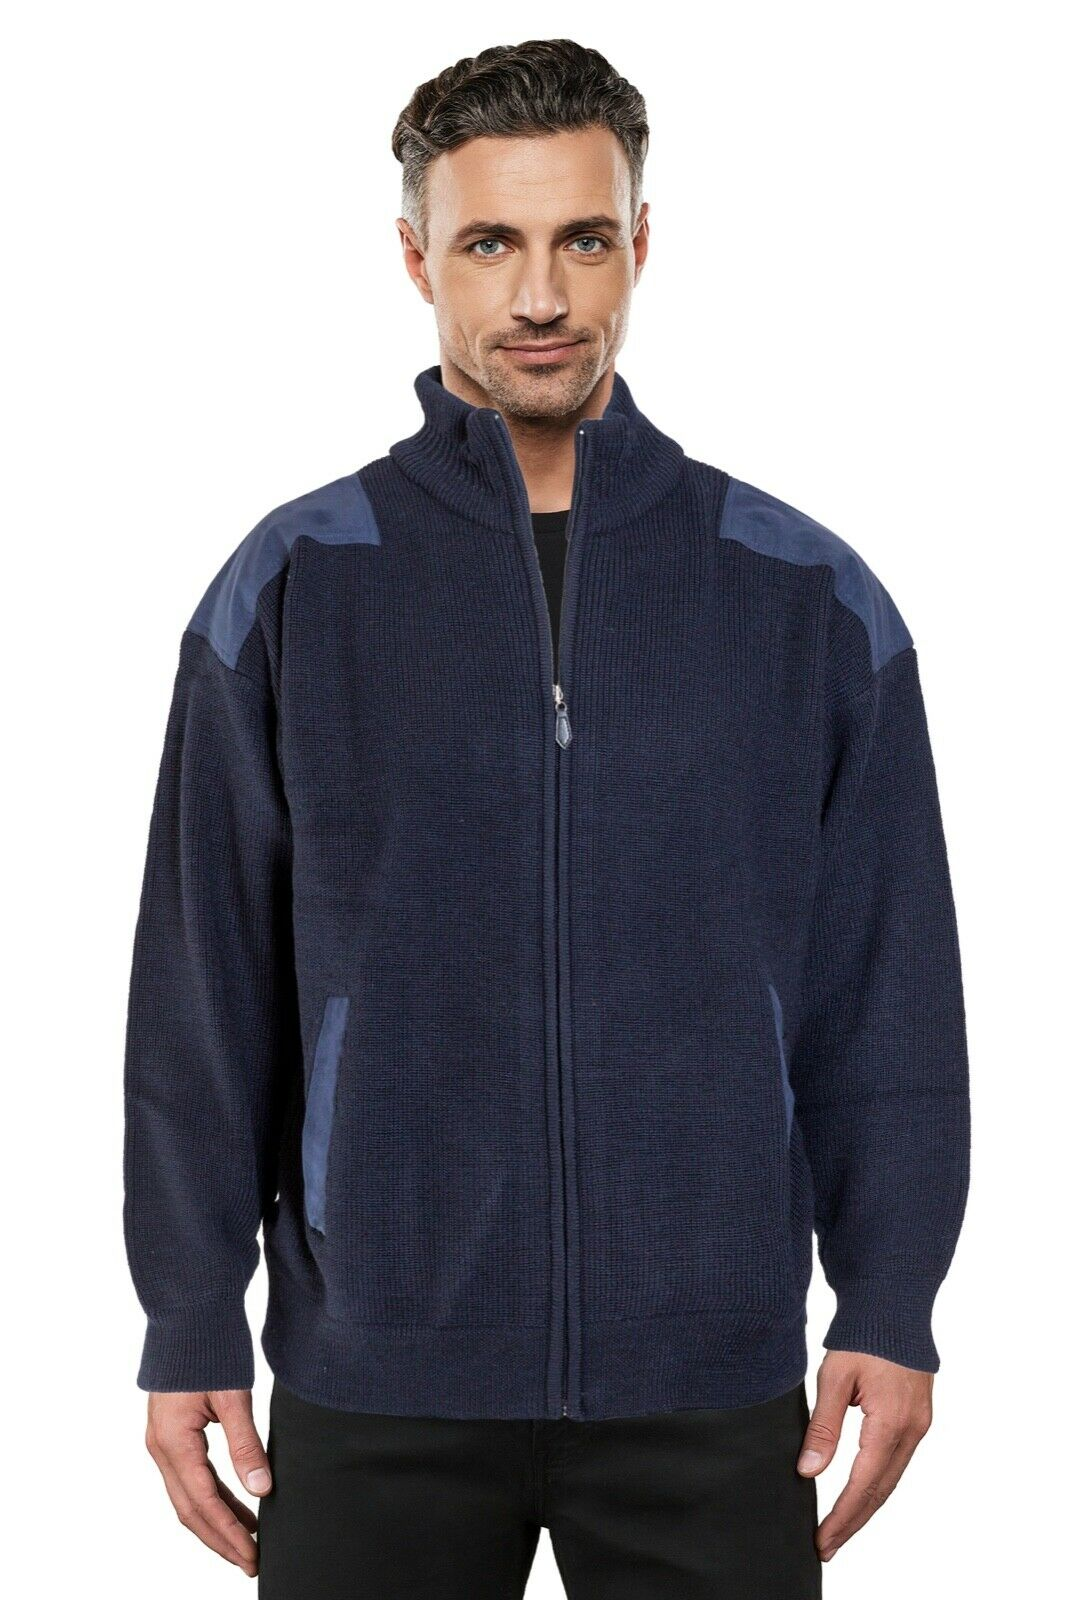 Navy Ansett Pure wolleFisherman Rib Knit jacke With Navy Patches Cardigan